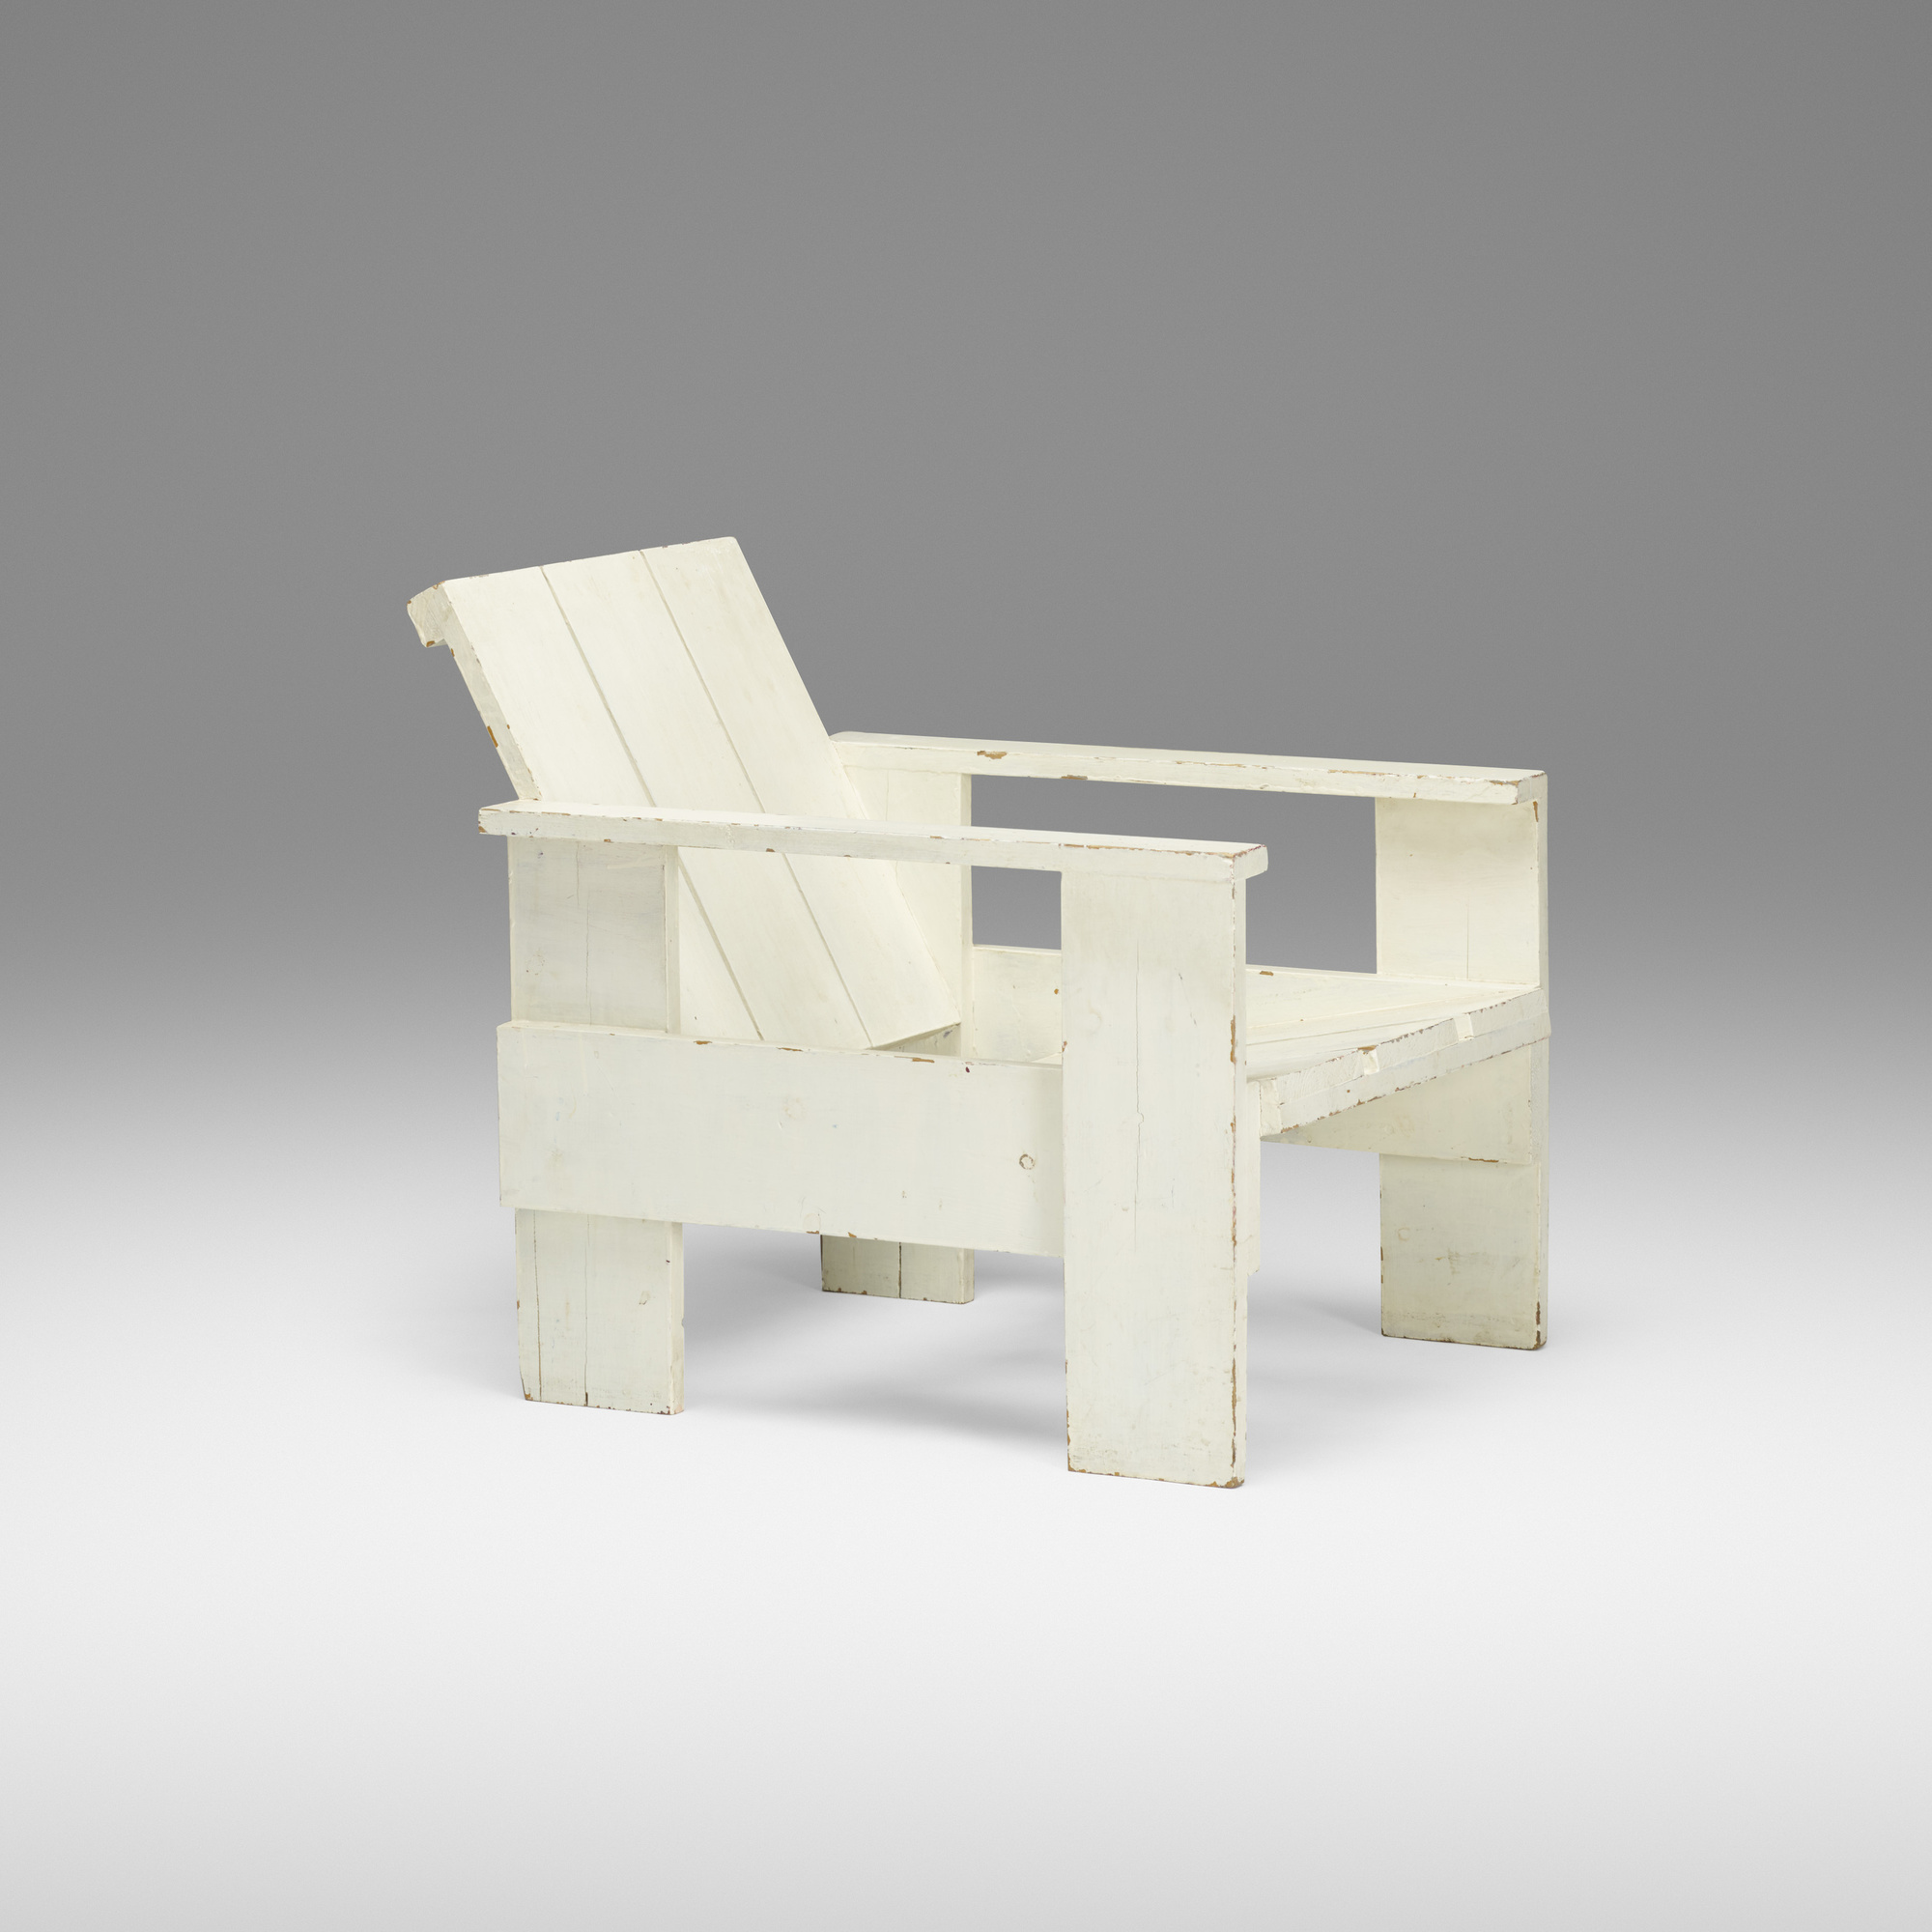 237: Gerrit Rietveld / Early Crate Chair (1 Of 3)